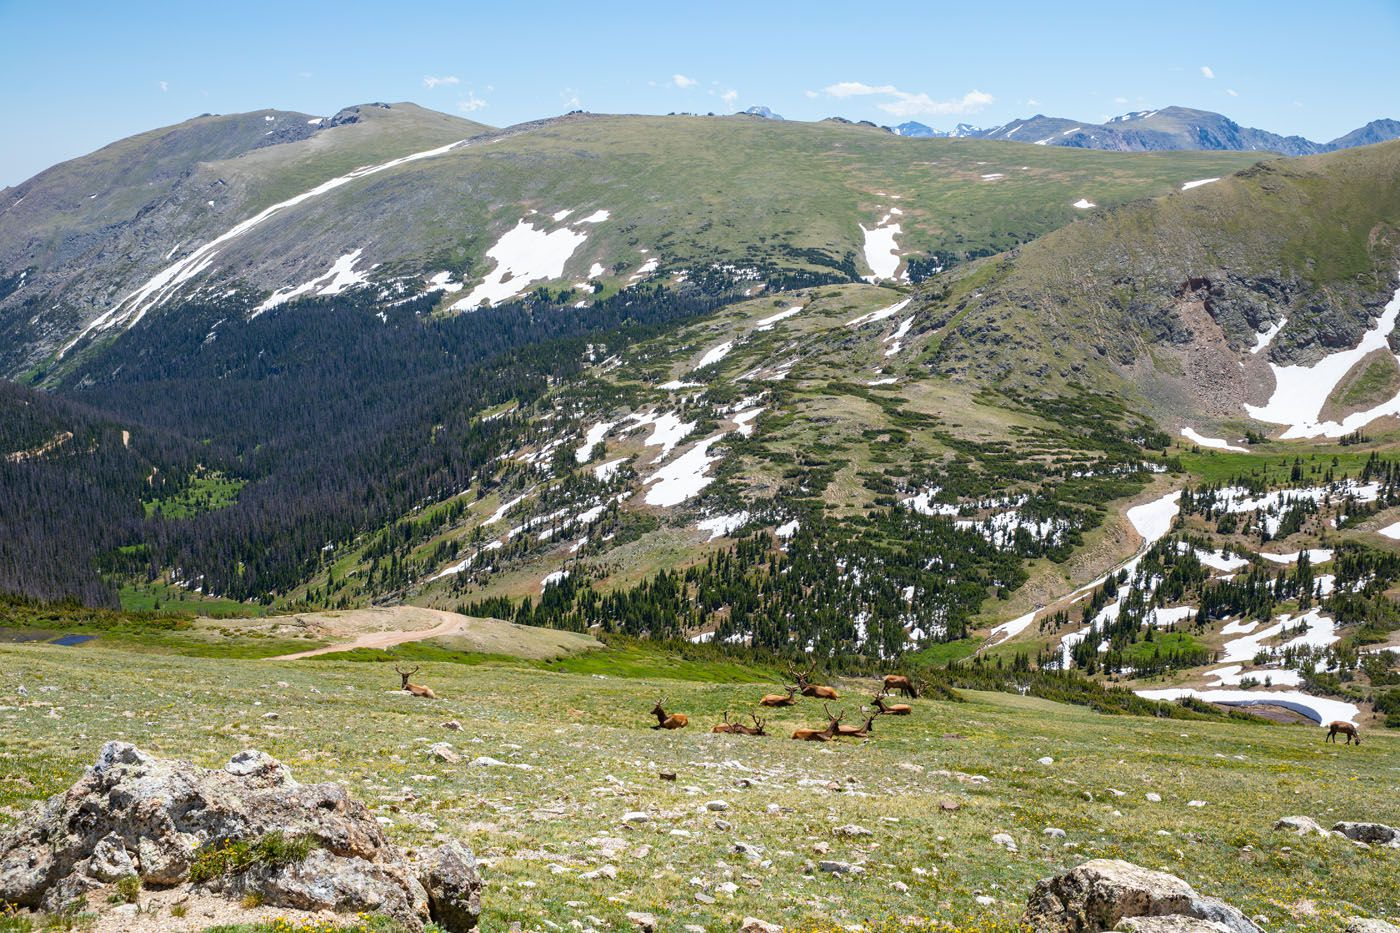 Alpine Ridge Elk one day in Rocky Mountain National Park